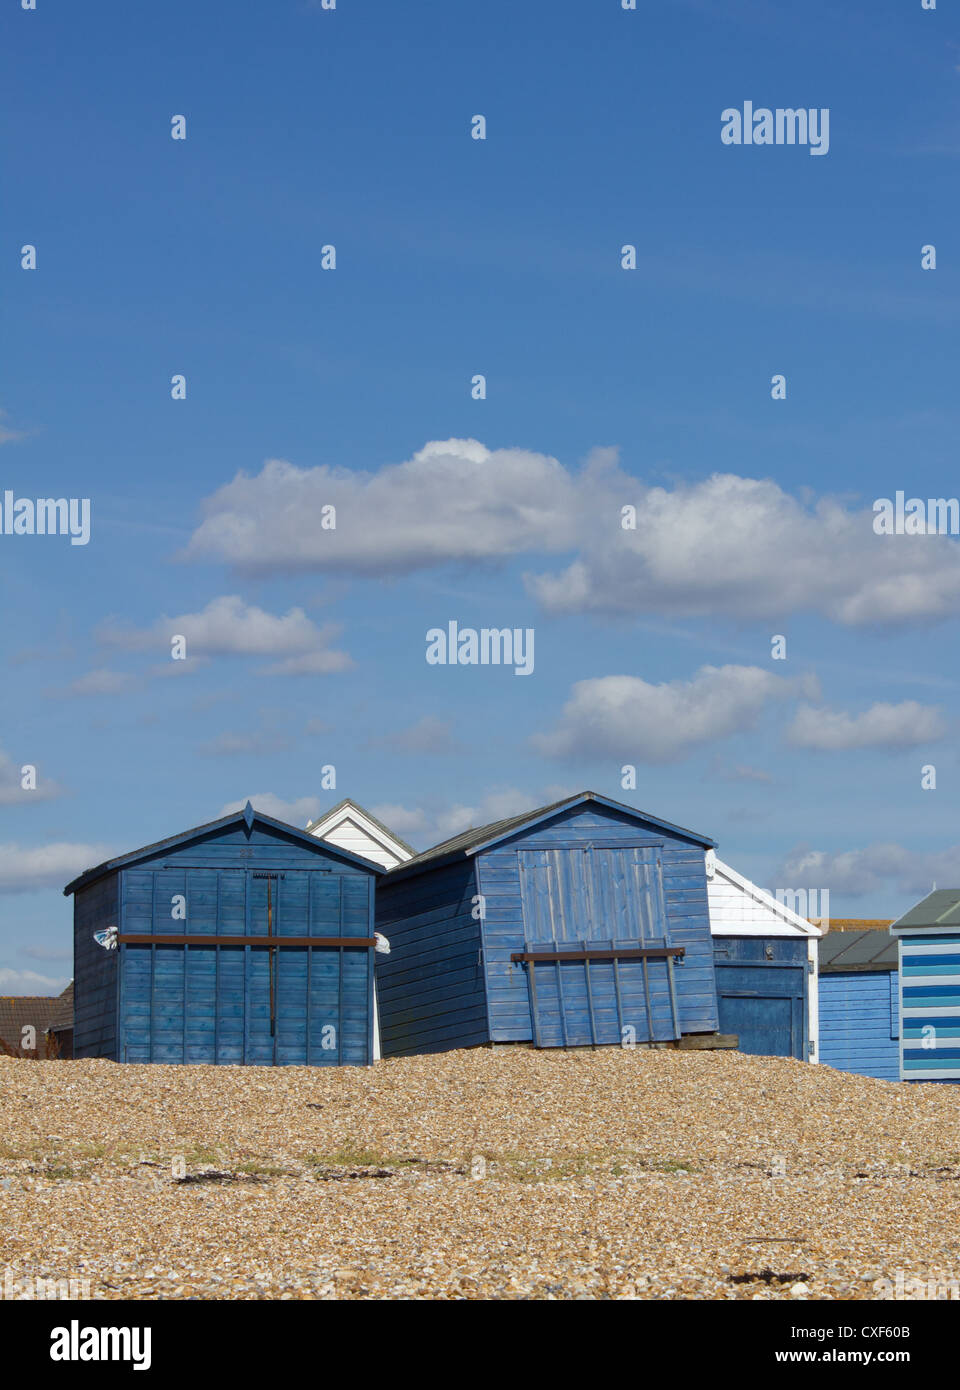 Two blue beach huts one at a strange angle - Stock Image